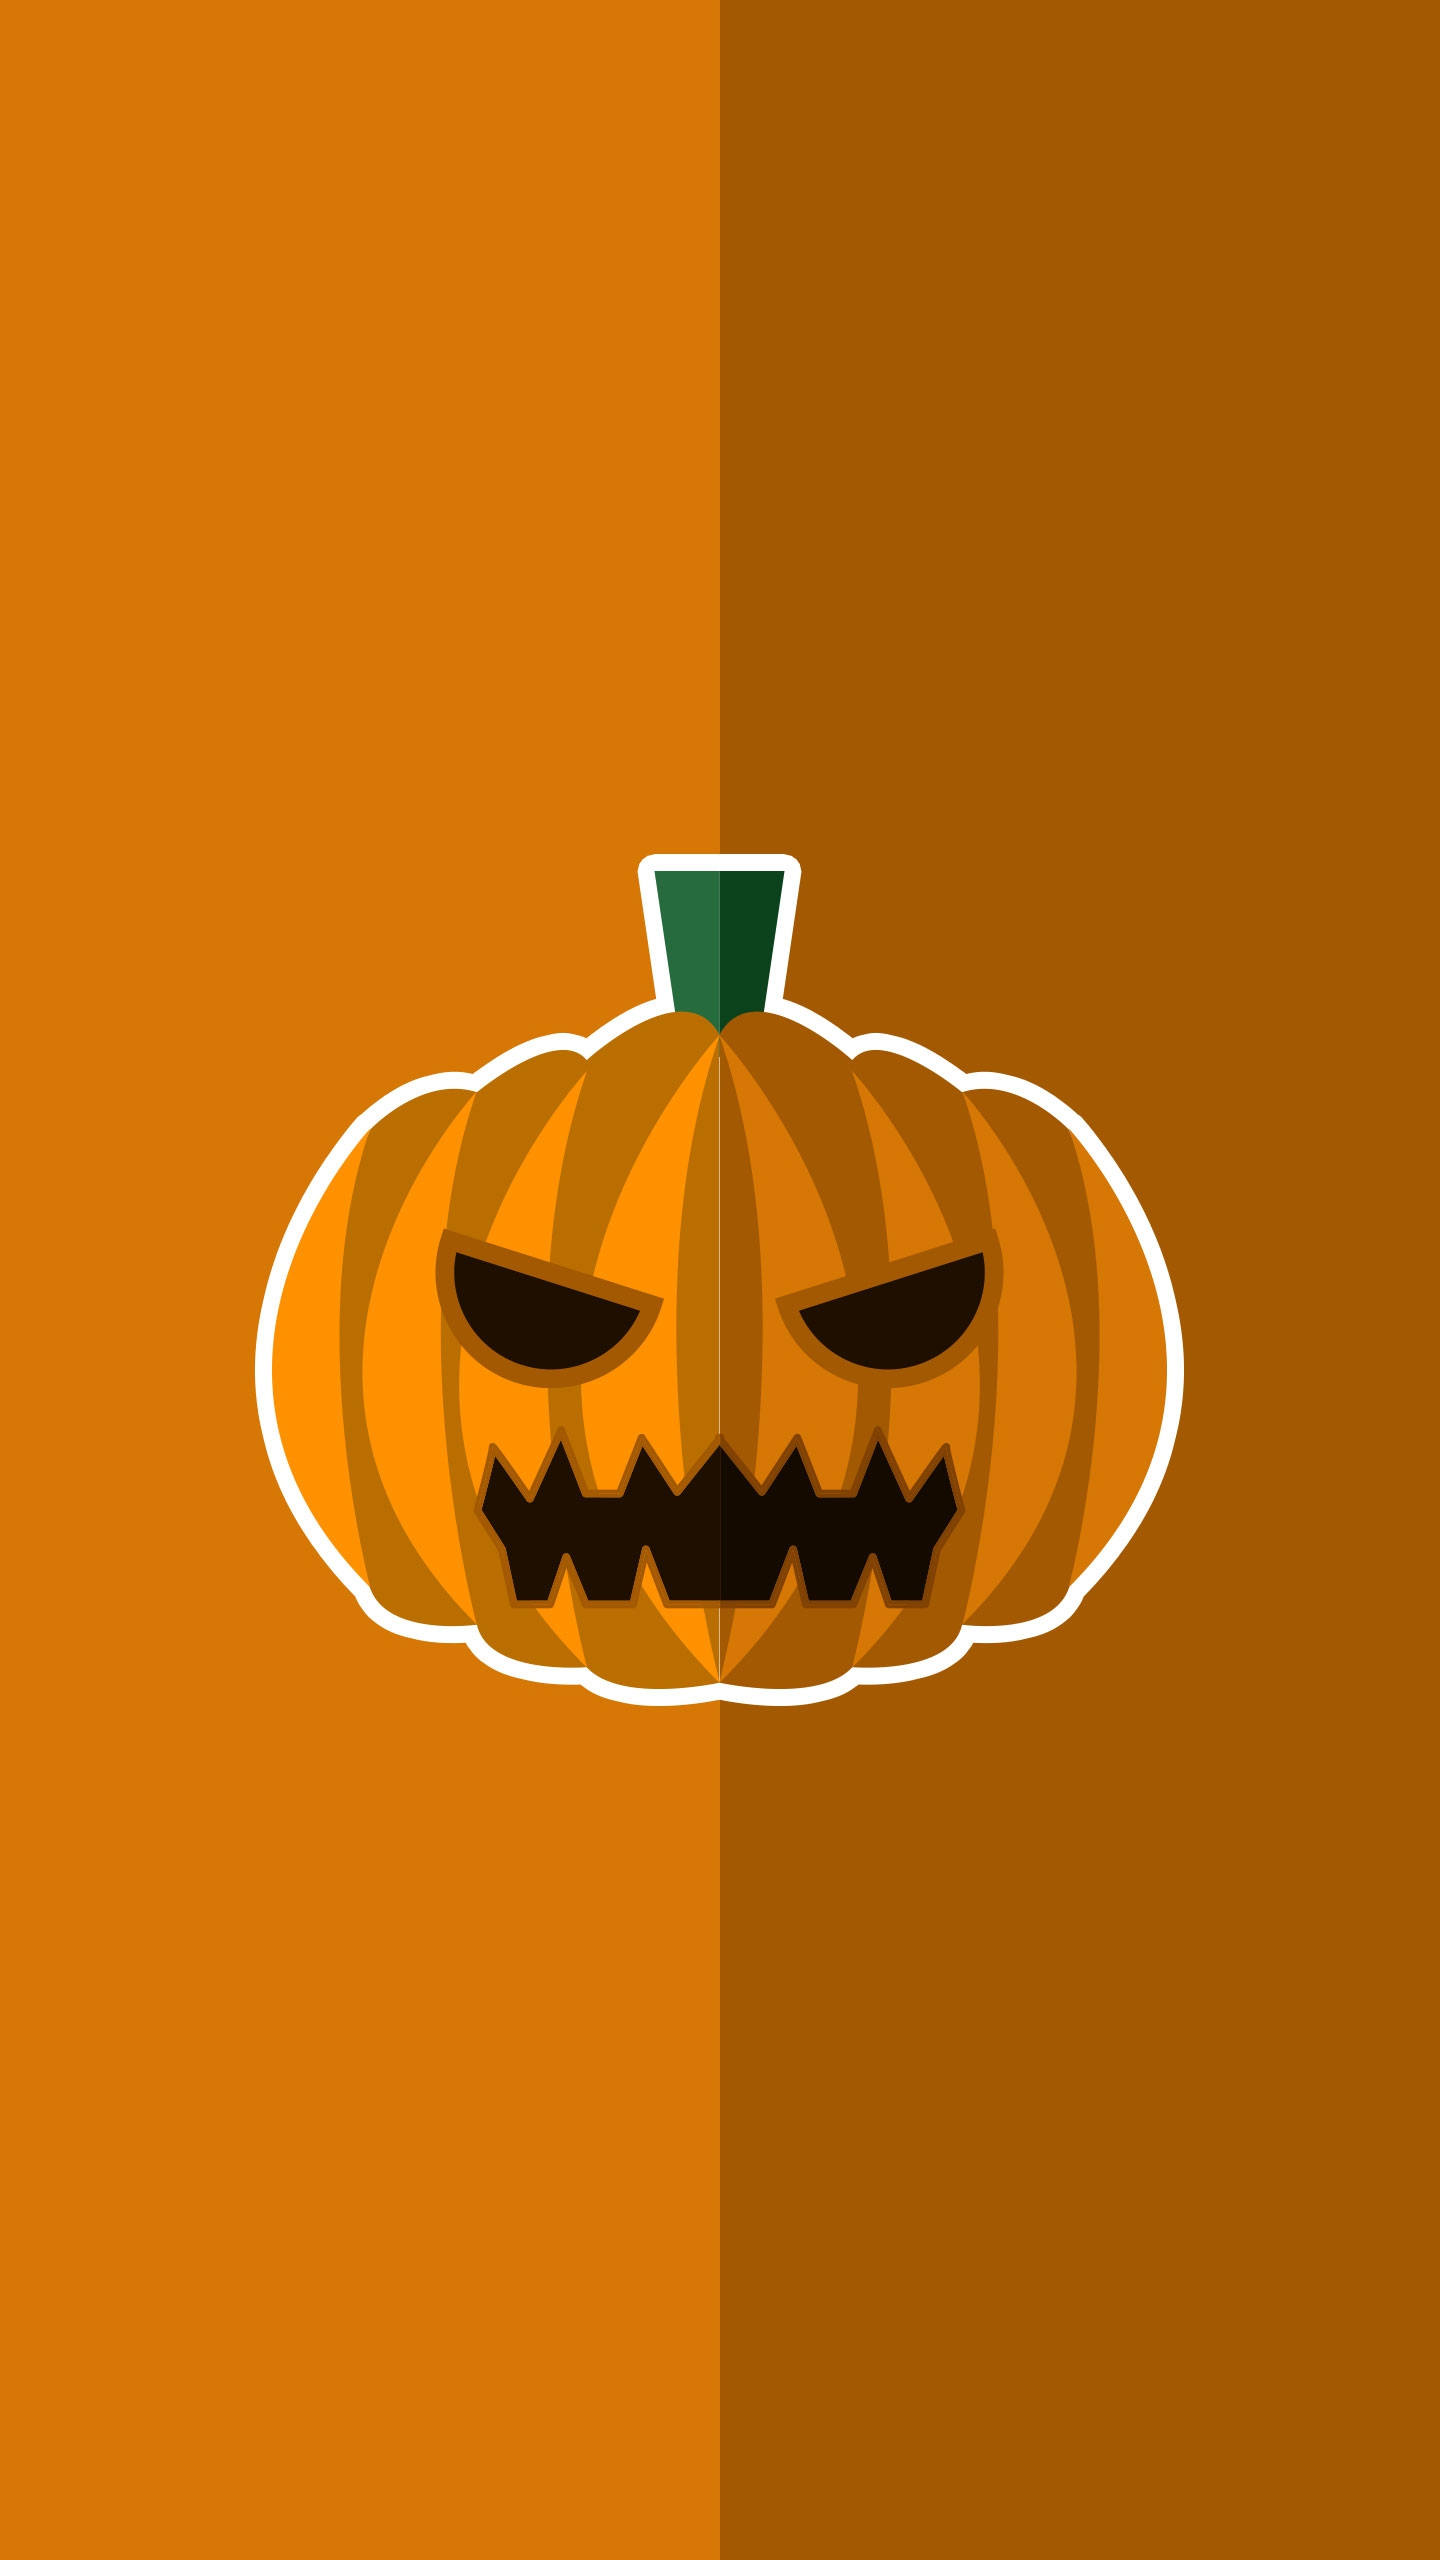 Halloween Pumpkin Minimal iPhone Wallpaper